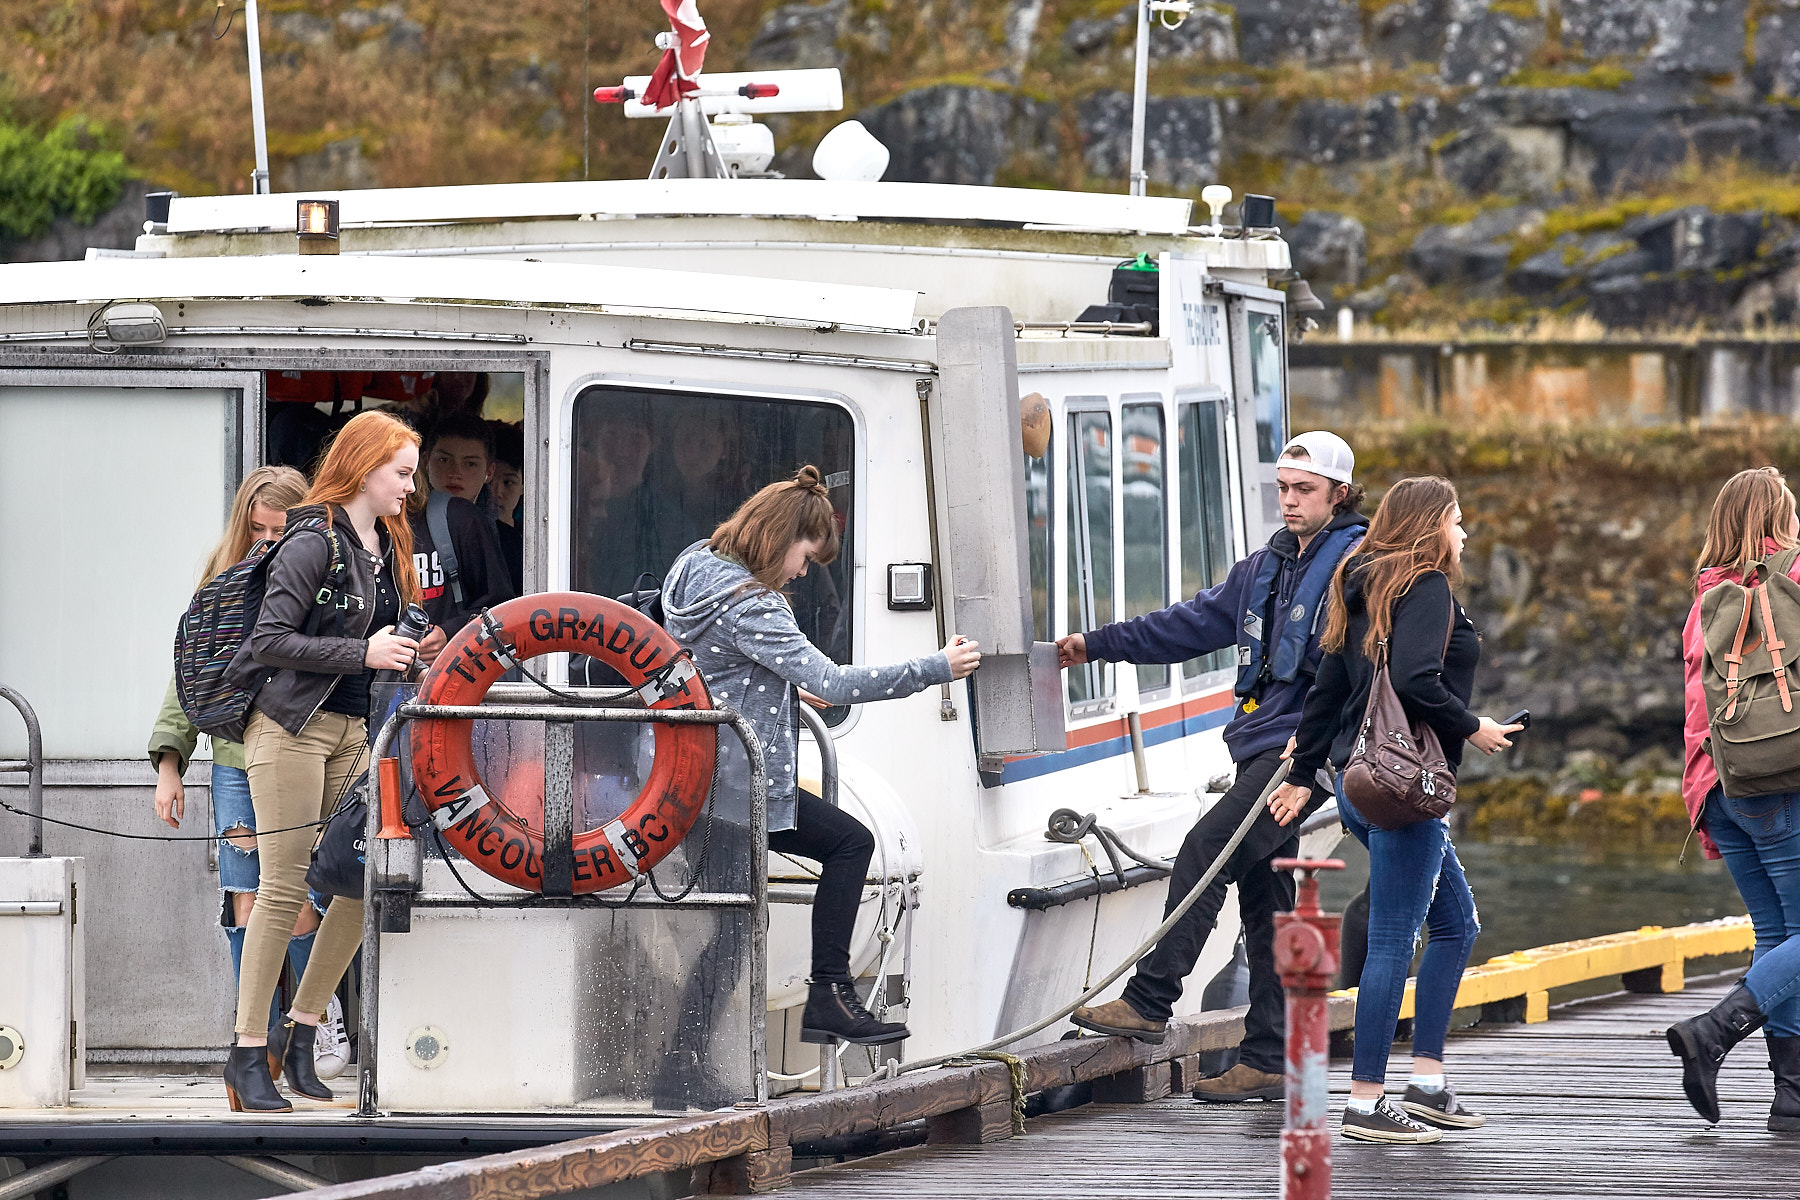 Students leave the water taxi at Ganges on Salt Spring Island ©johncameron.ca